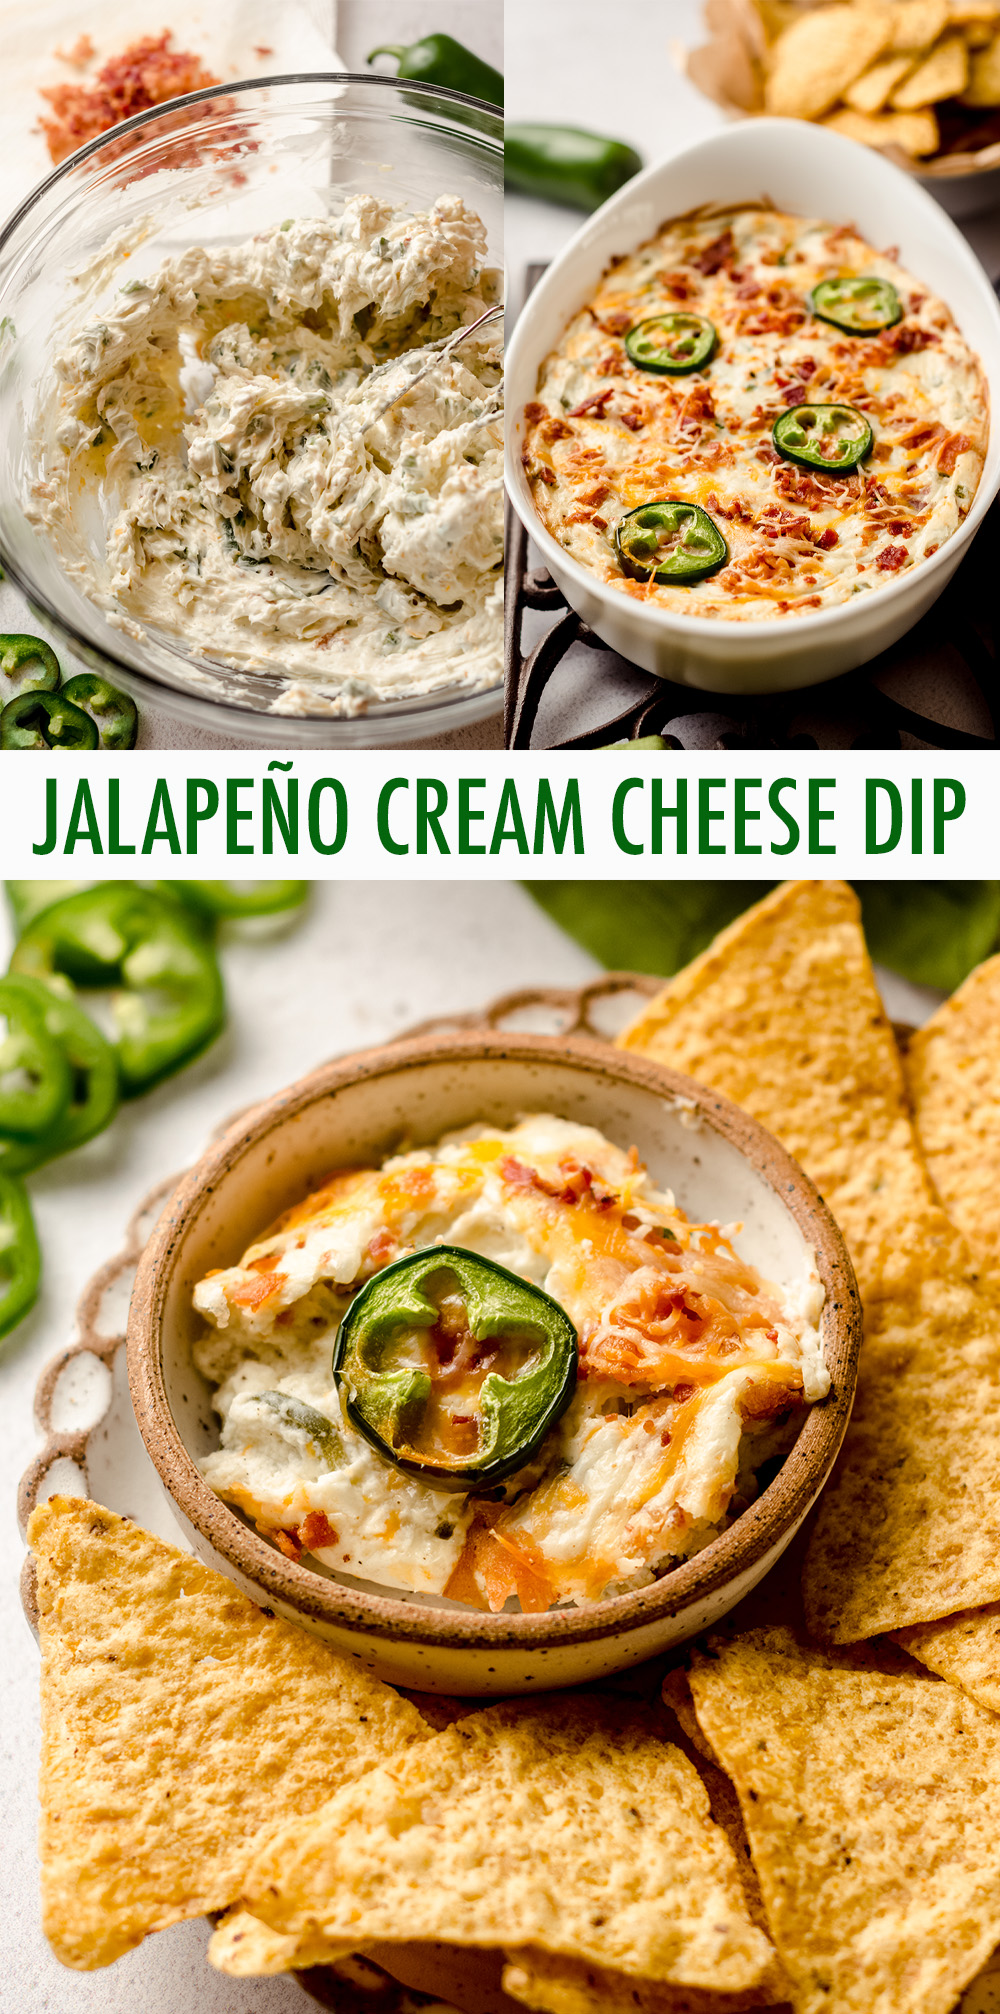 Cheesy, creamy, spicy jalapeño popper dip is the perfect appetizer or side for any Mexican dish. Serve with chips, vegetables, or as a topping.